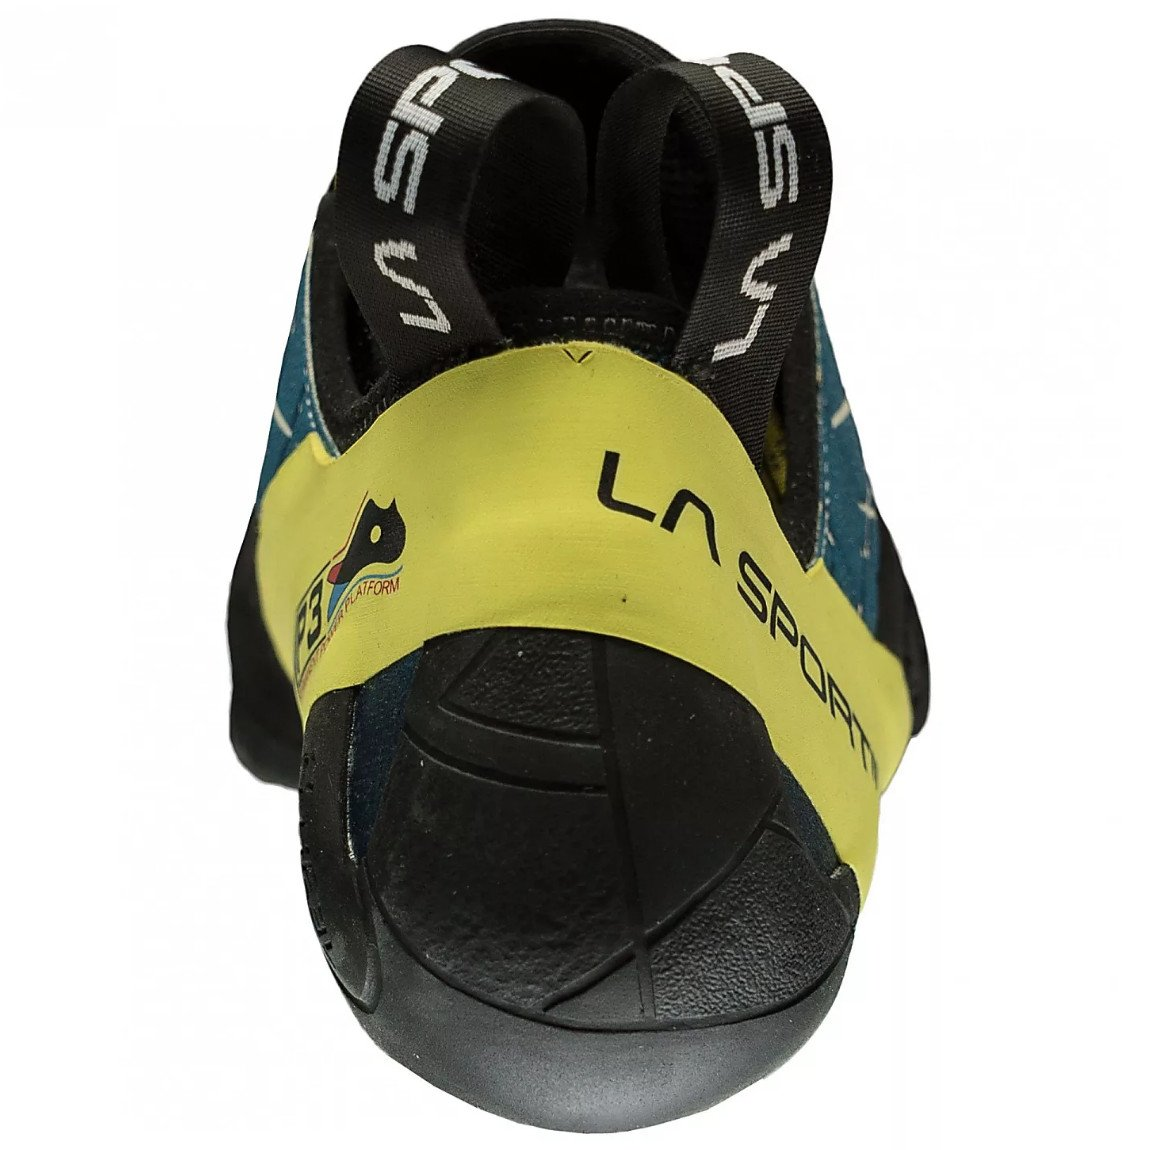 La Sportiva Kataki climbing shoe, view of the heel